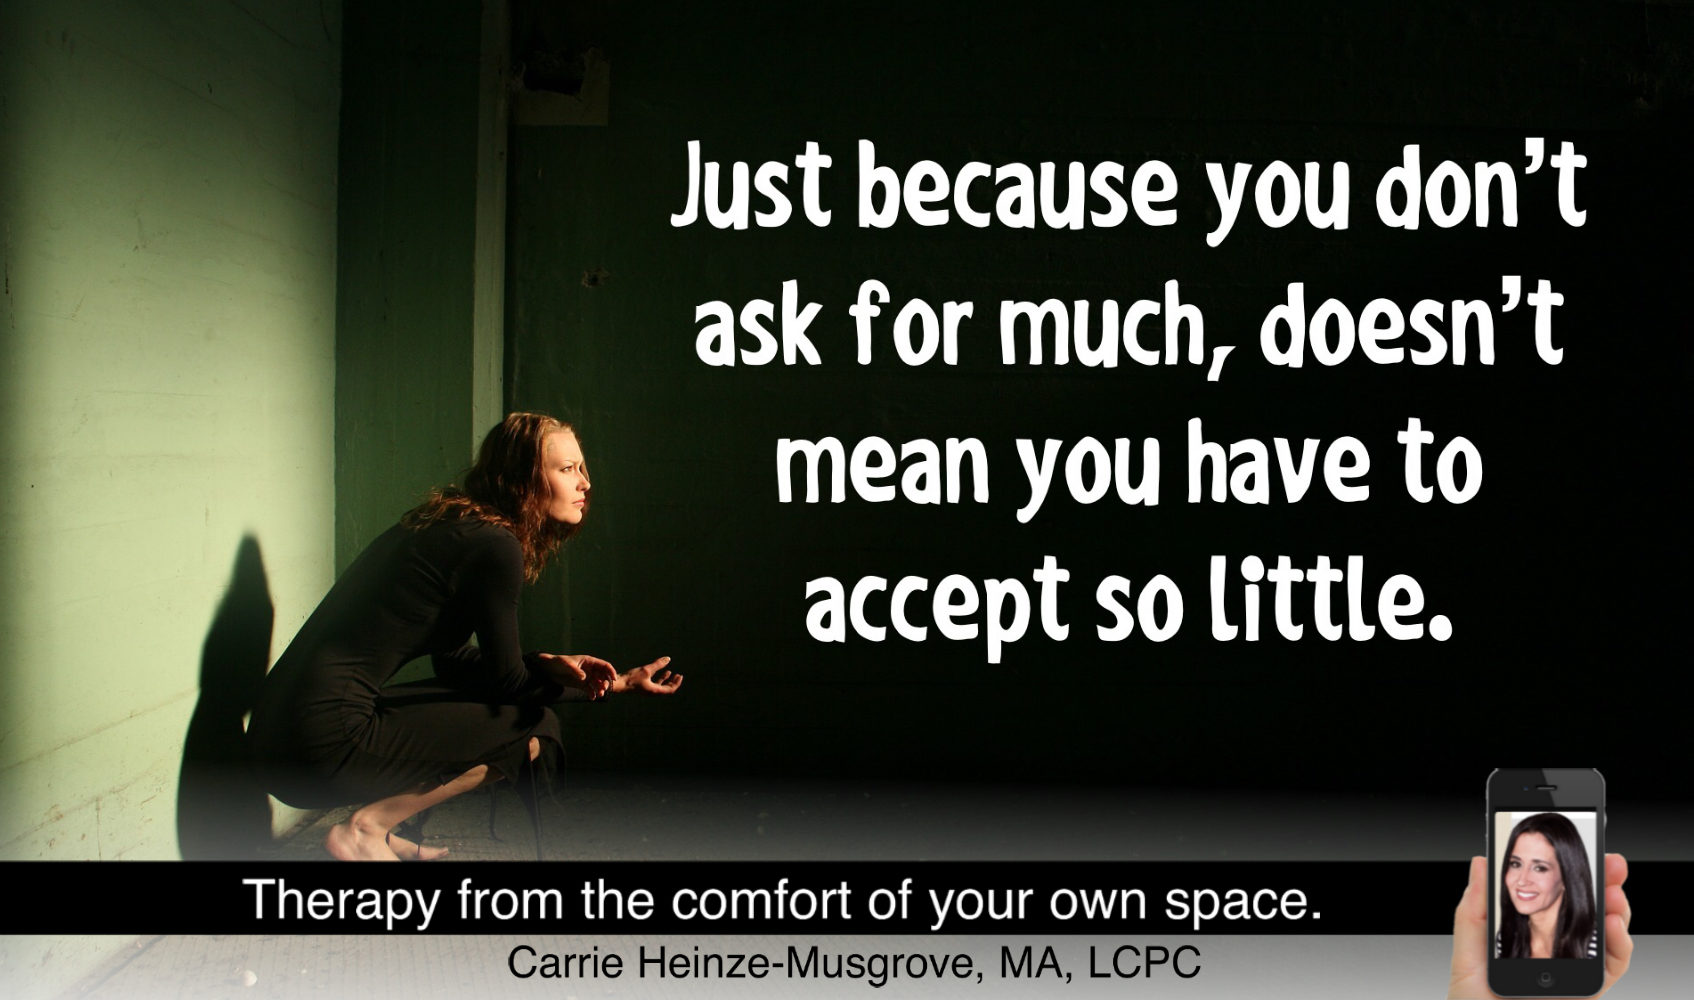 Just because you don't ask for much doesn't mean you have to accept so little.